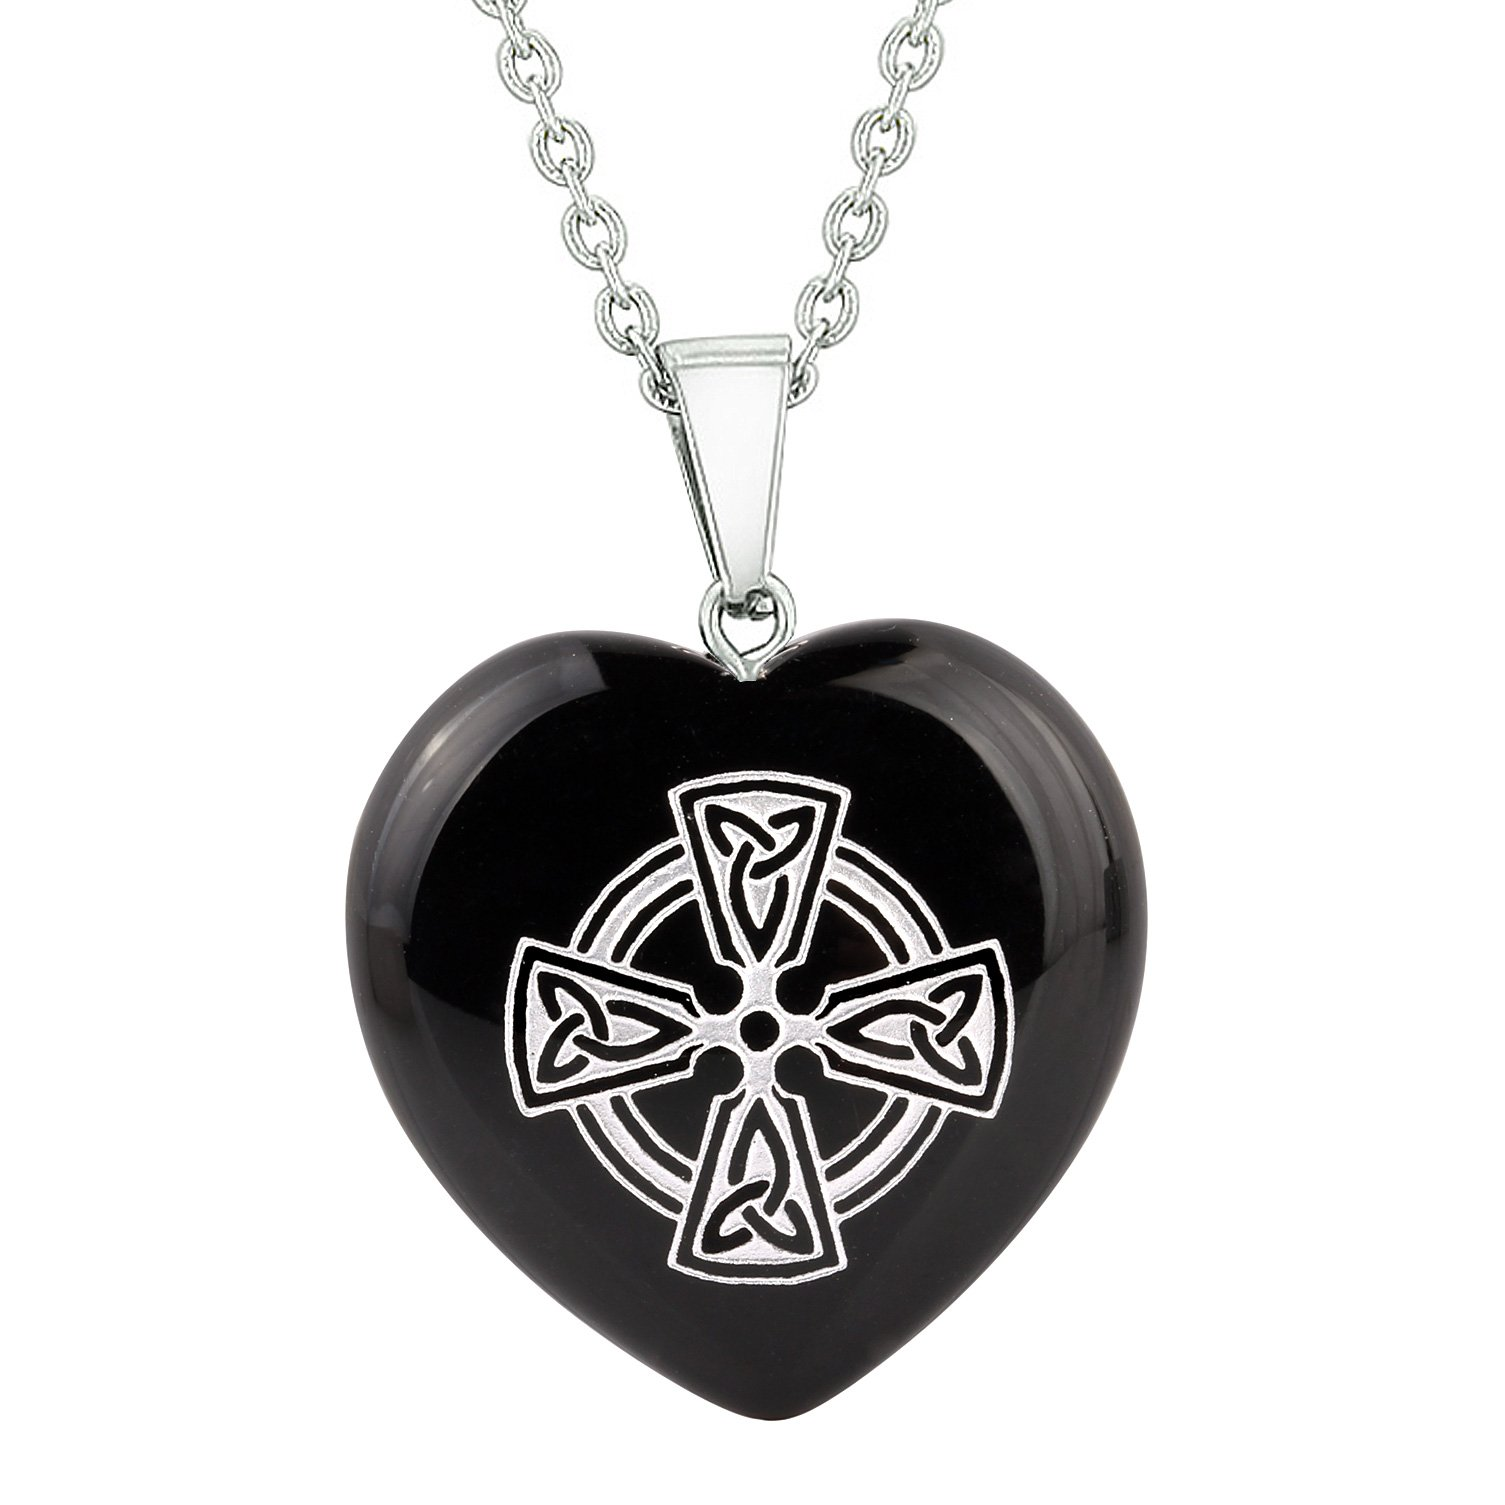 Amulet Viking Celtic Cross Circle Powers Protect Energy Black Agate Puffy Heart Pendant Necklace